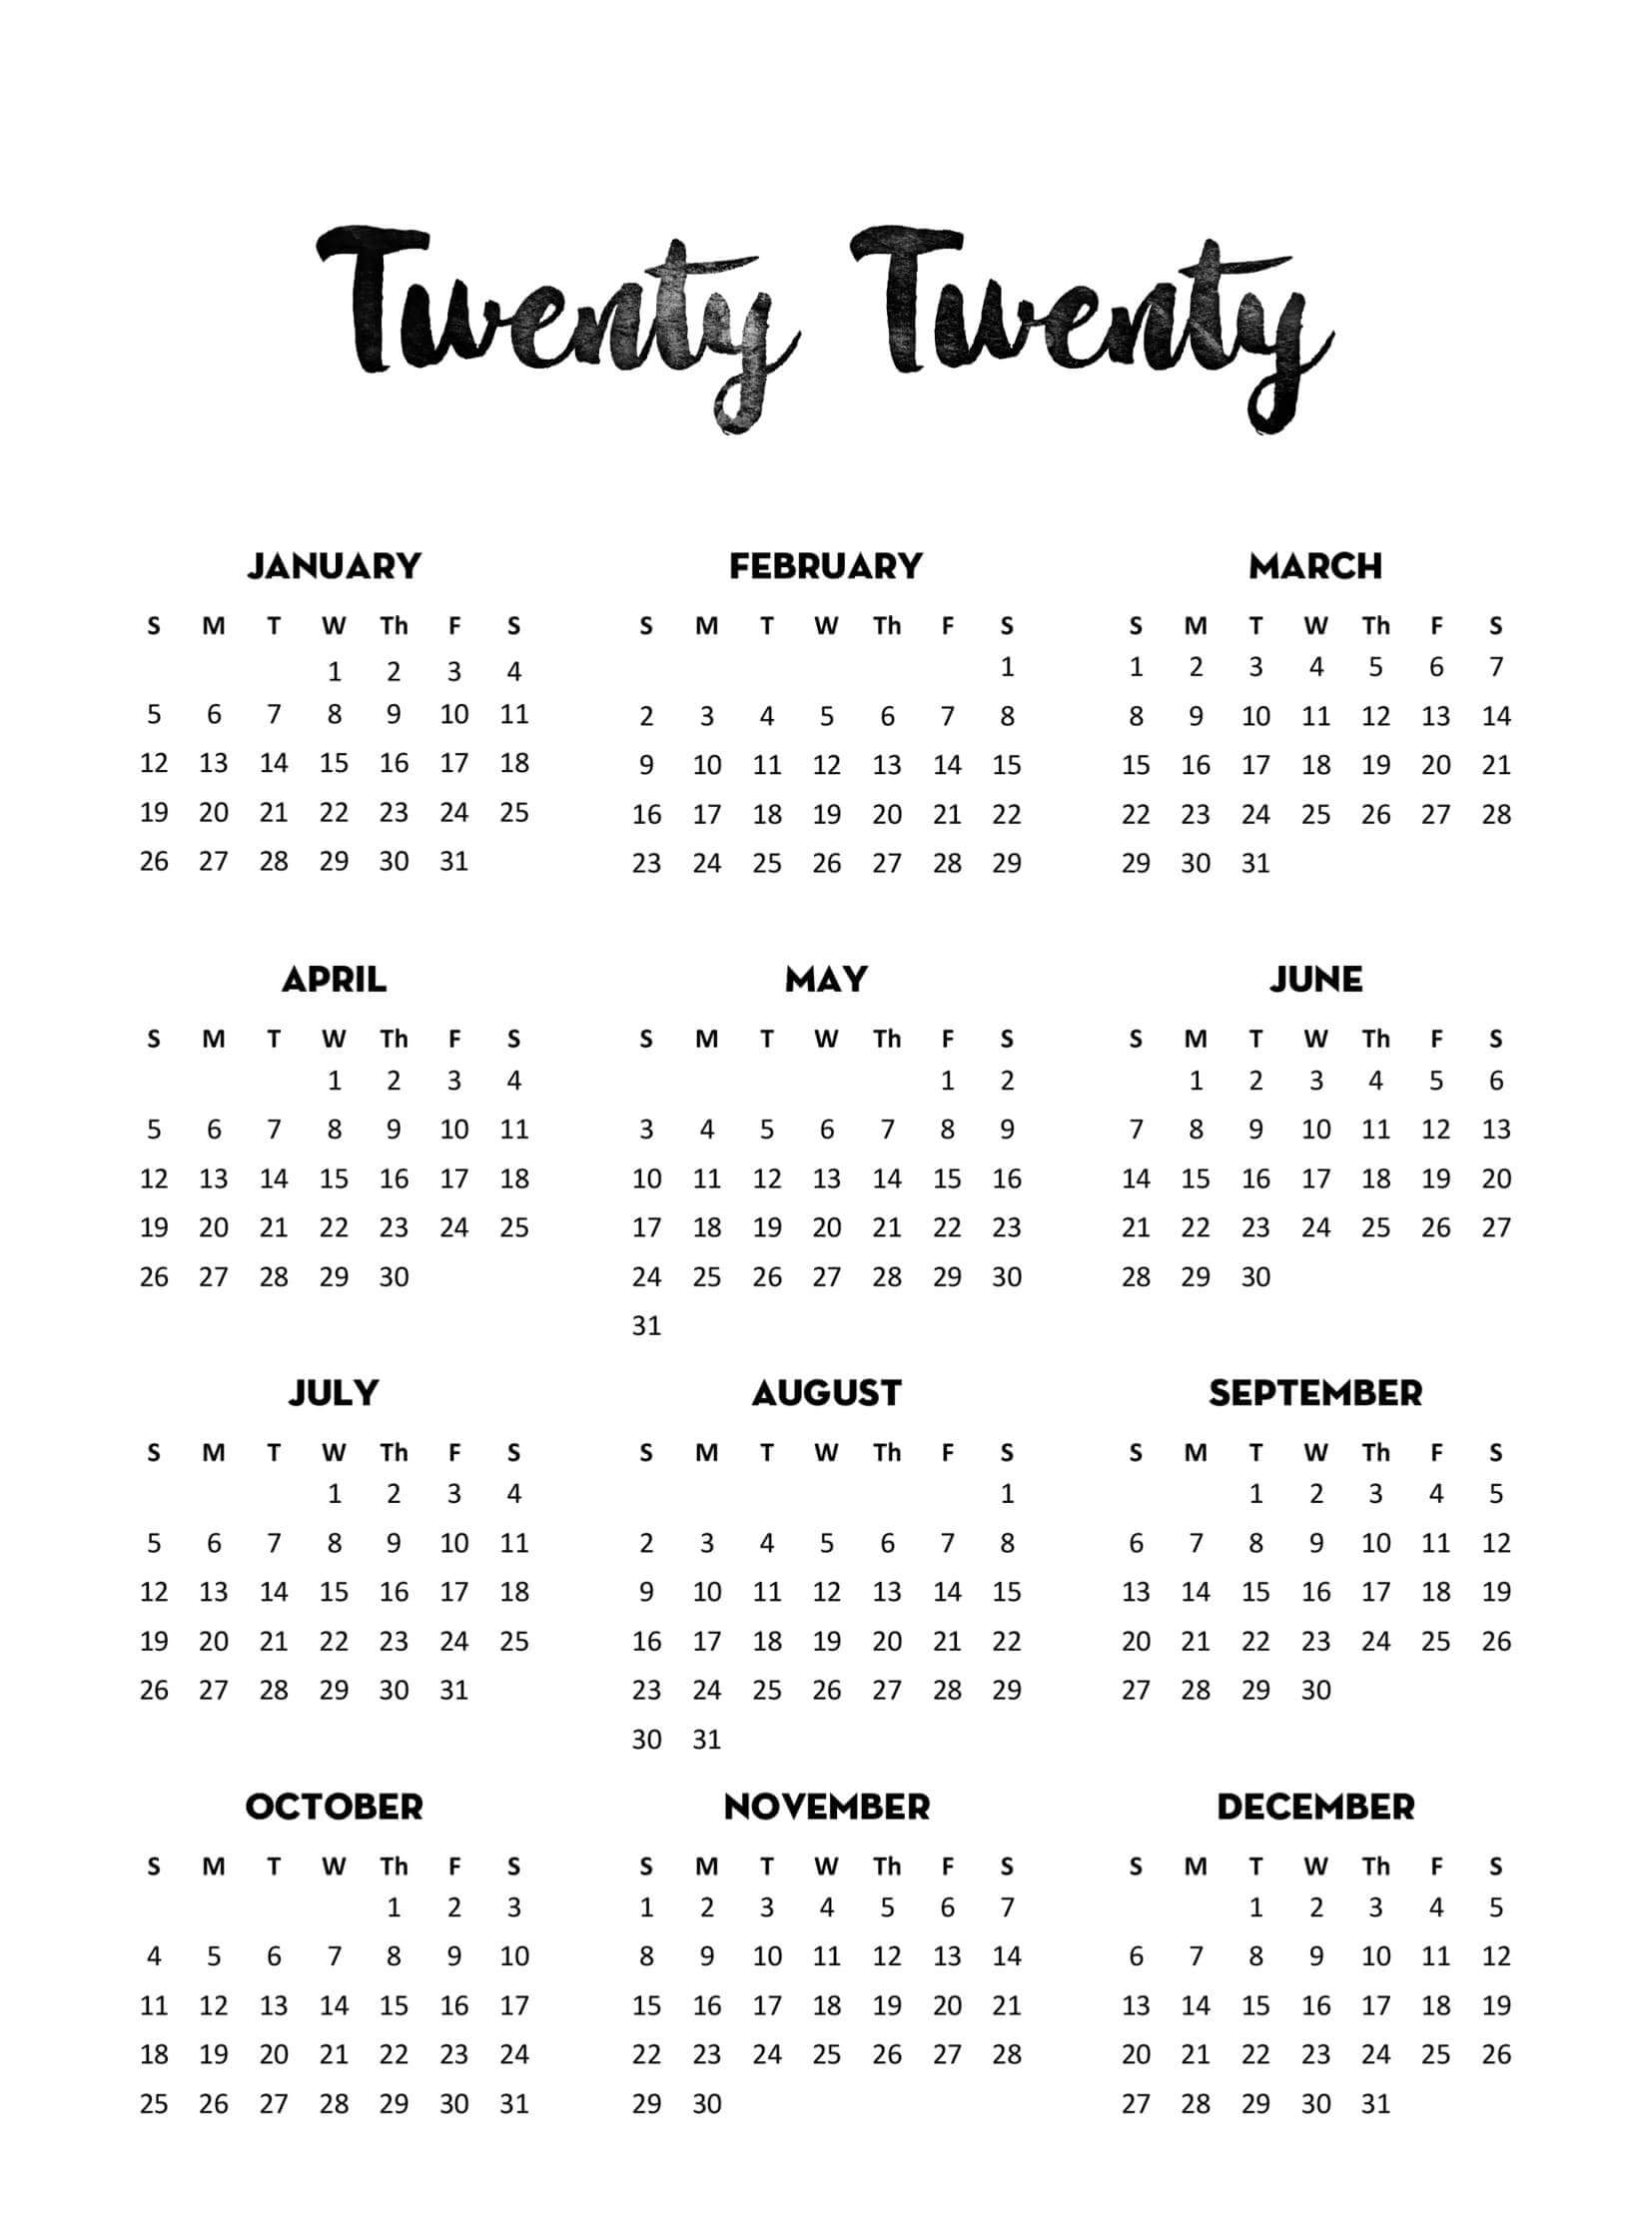 Yearly Calendar Template With Notes 2020 - 2019 Calendars